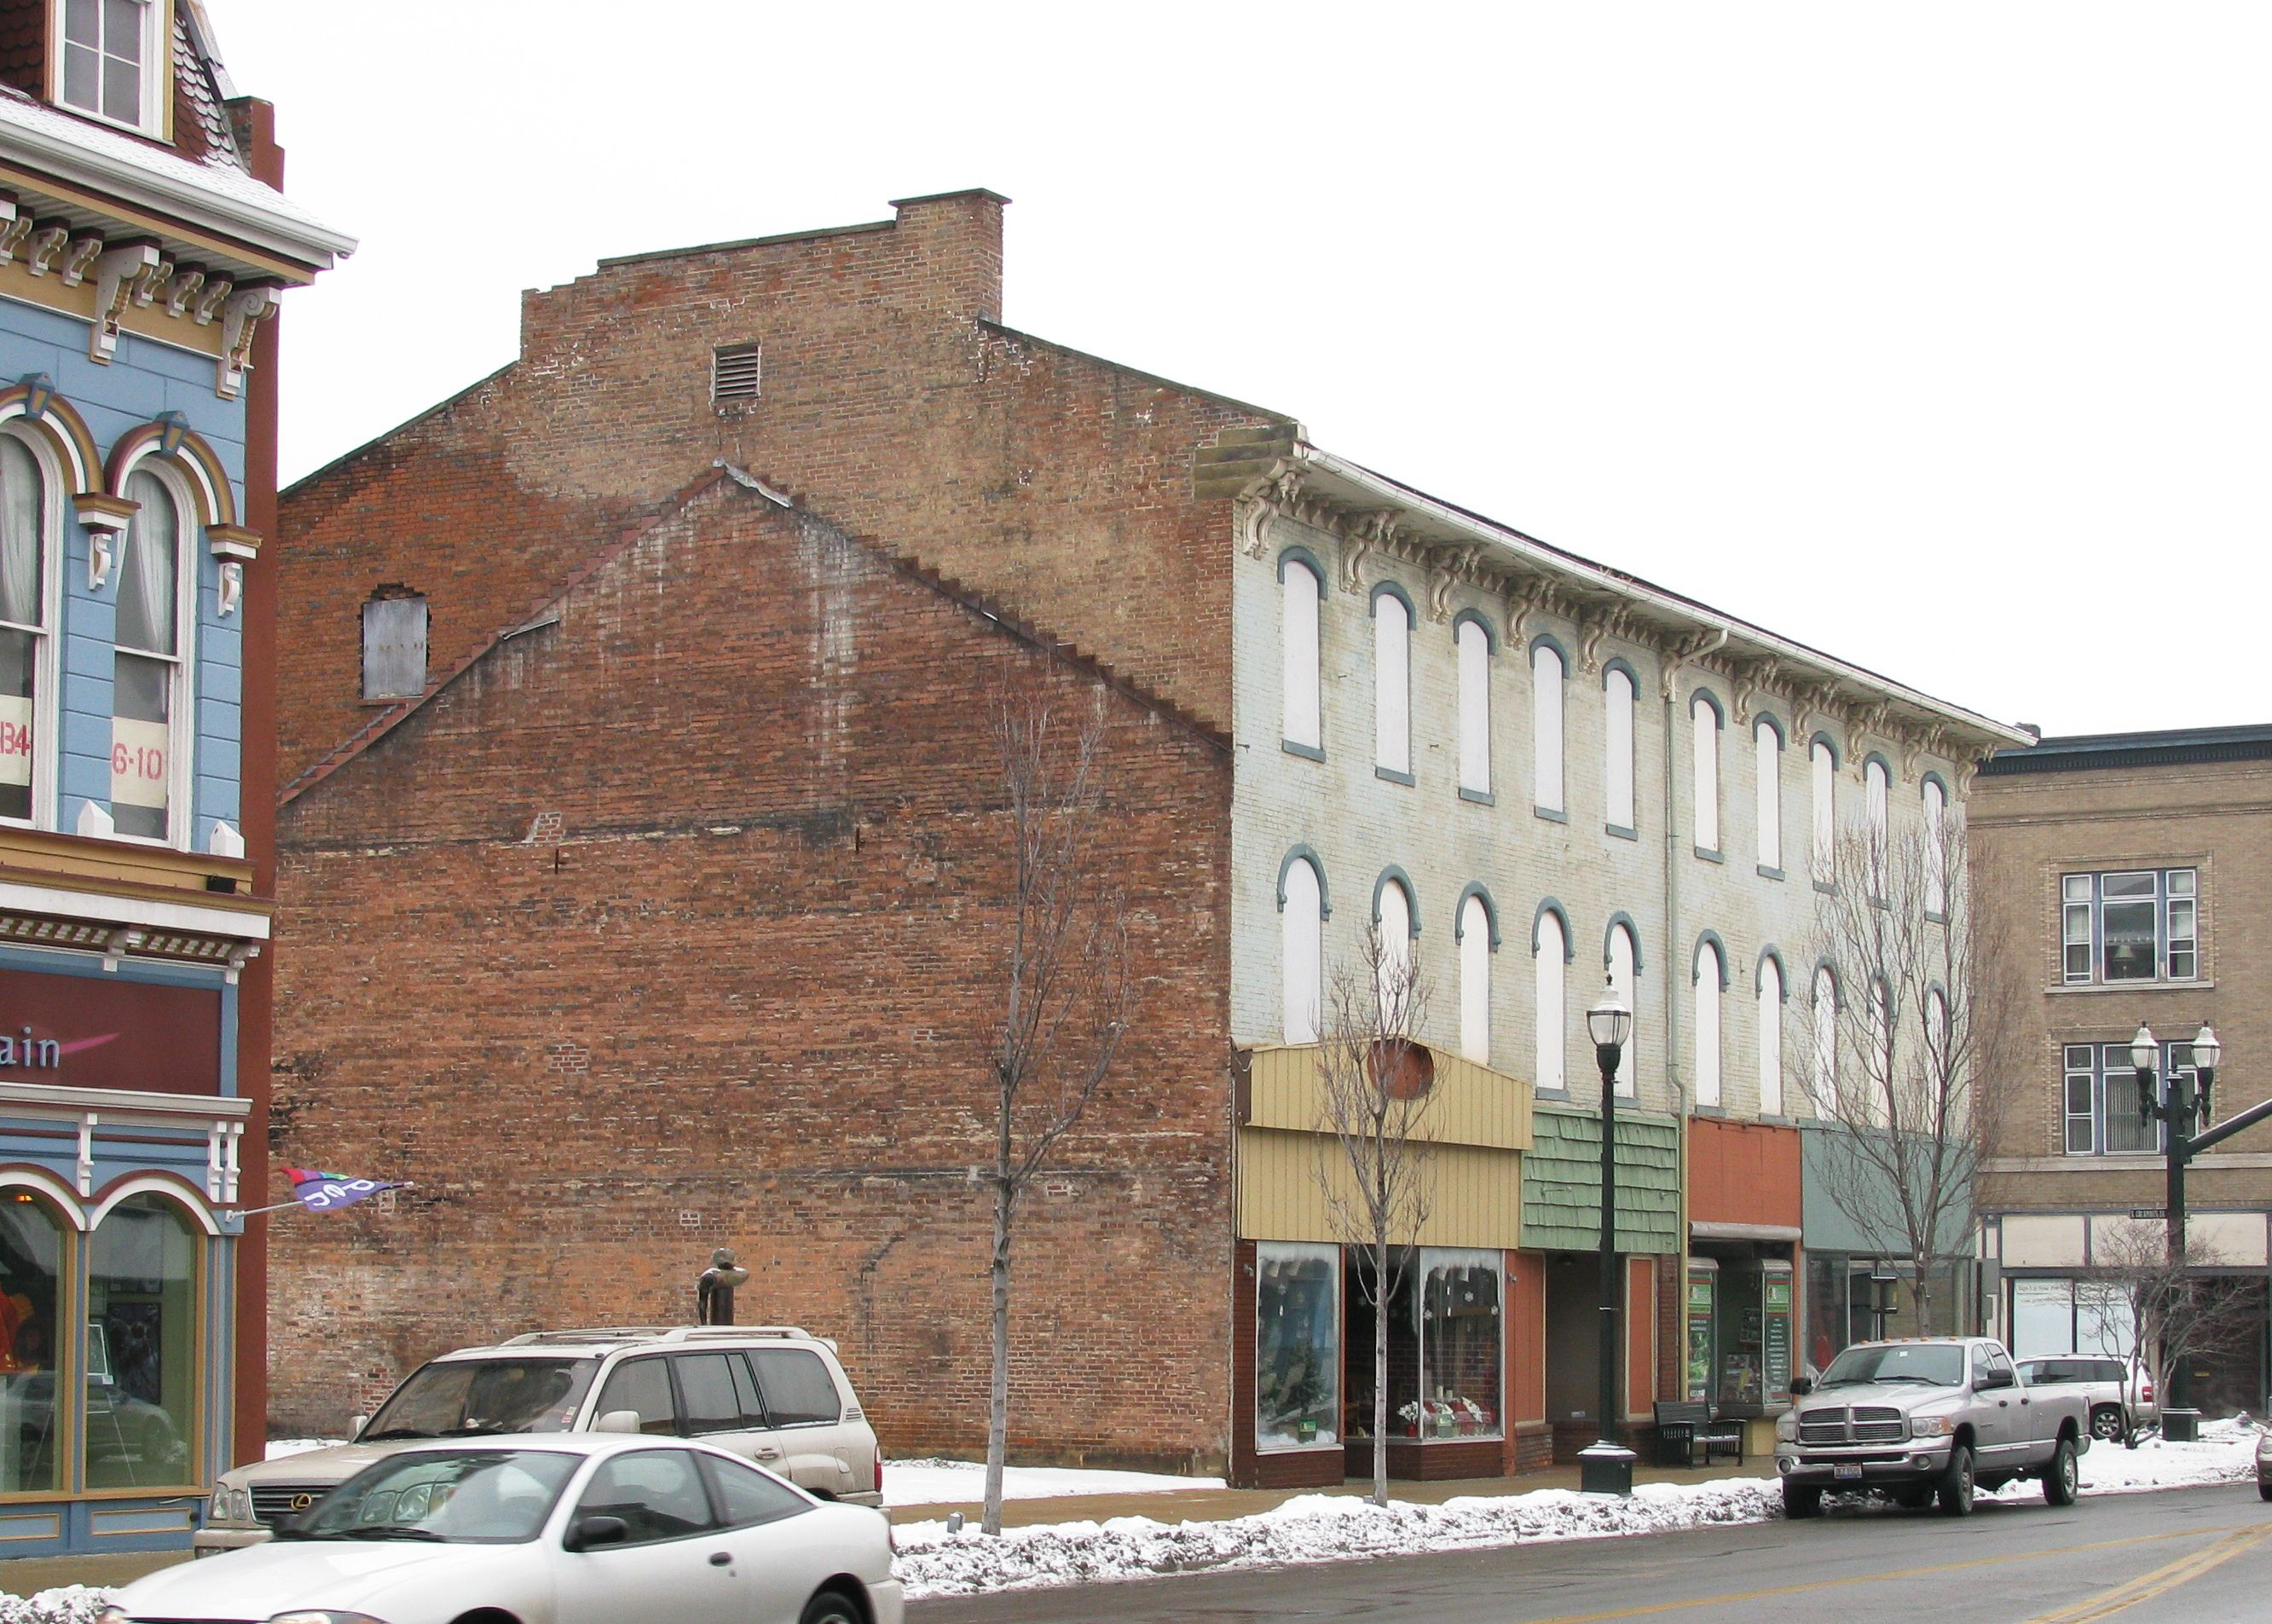 The Mithoff Hotel In Lancaster Ohio A 2010 2017 Top Opportunity To